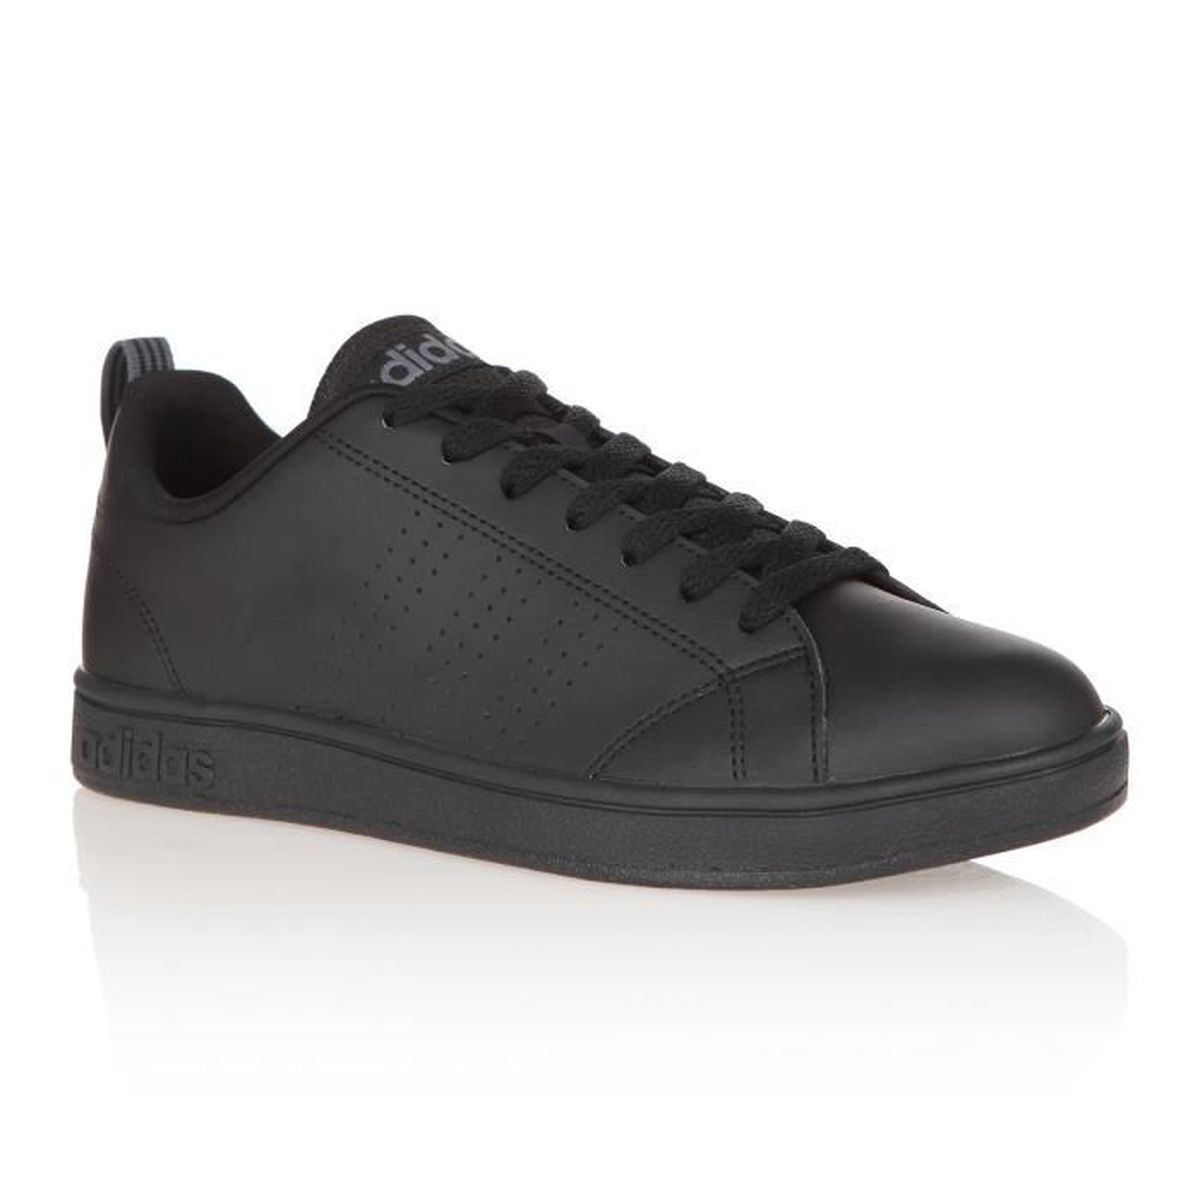 differently 5f7c1 1ee00 Adidas neo homme